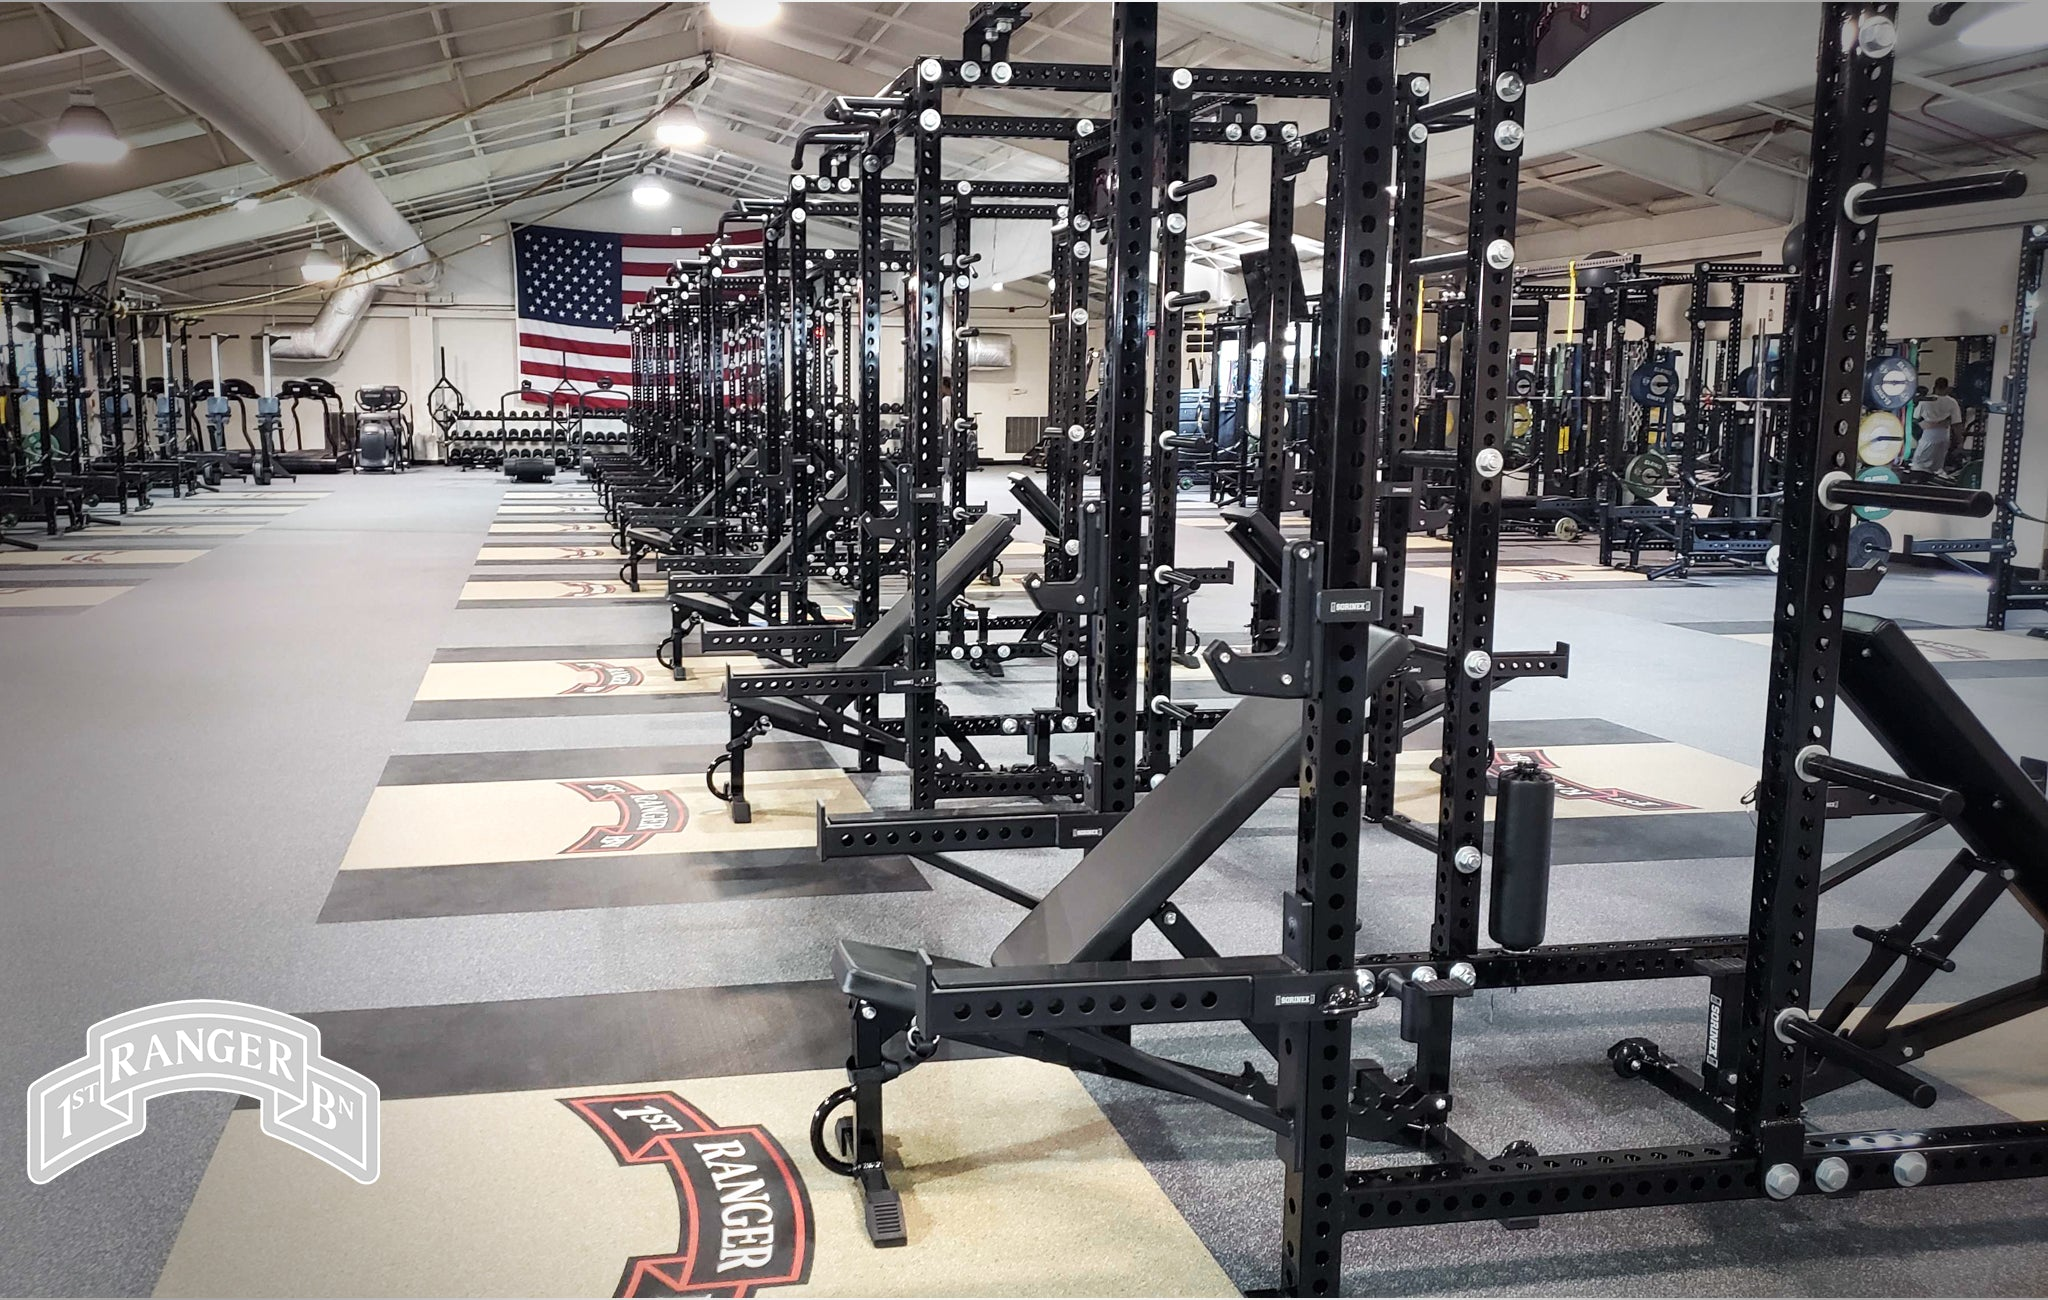 1/75th rangers Sorinex strength and conditioning facility